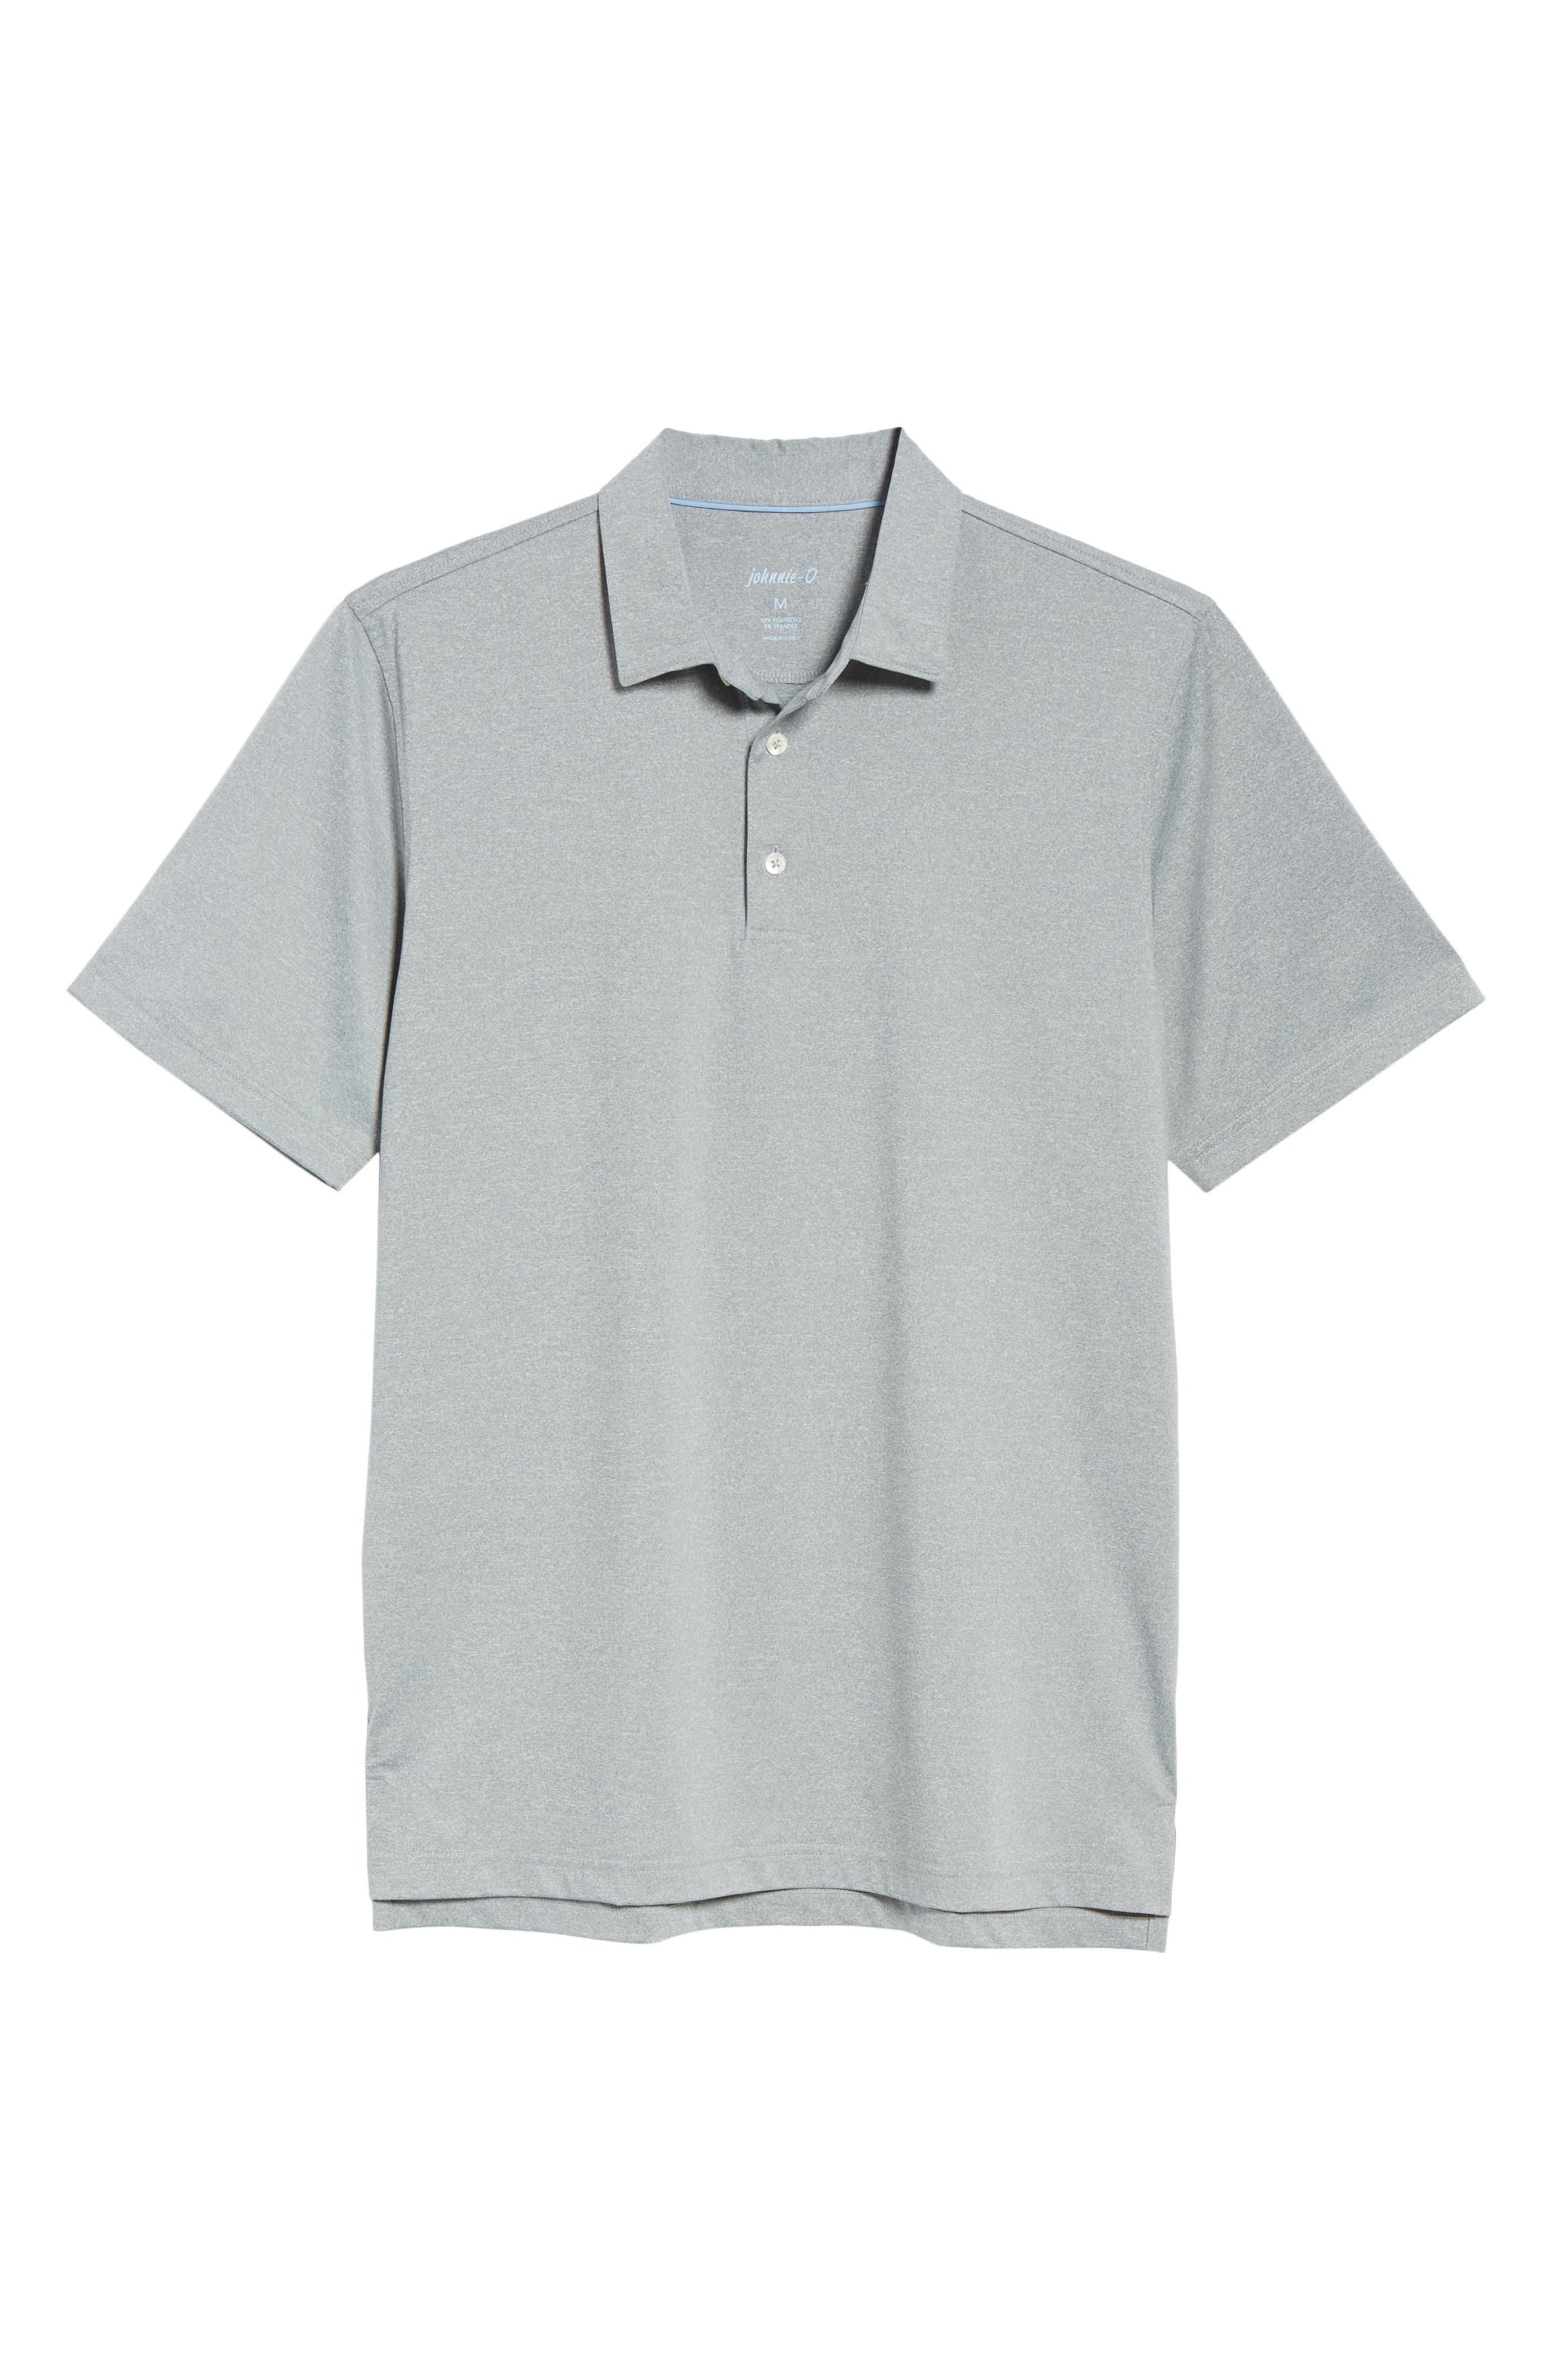 Birdie Classic Fit Performance Polo,                             Alternate thumbnail 6, color,                             METEOR